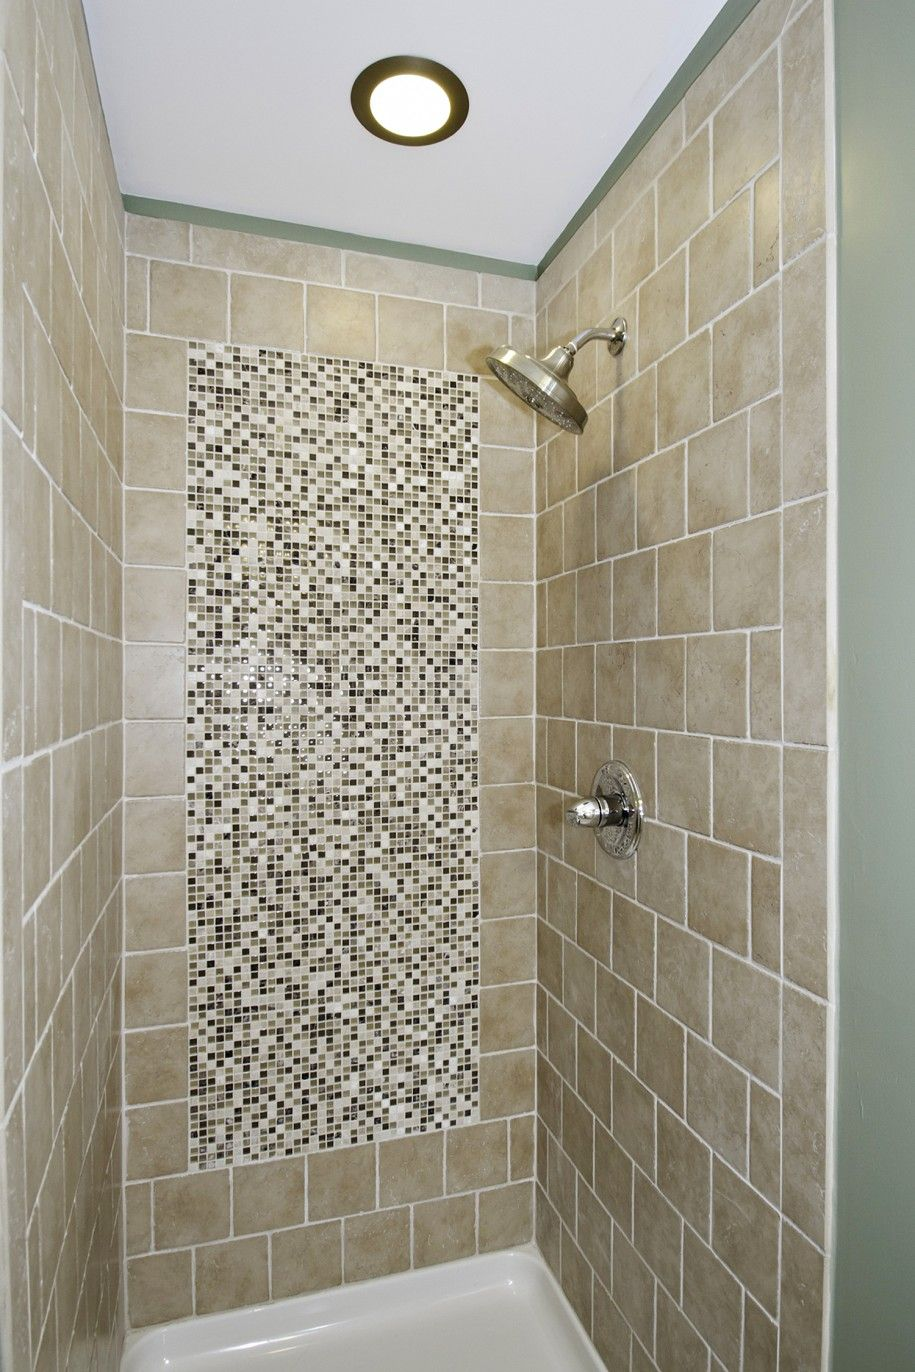 How to fit bathroom tiles - Splendid Image Of Bathroom Decoration Using Stand Up Shower Ideas Fantastic Small Bathroom Design And